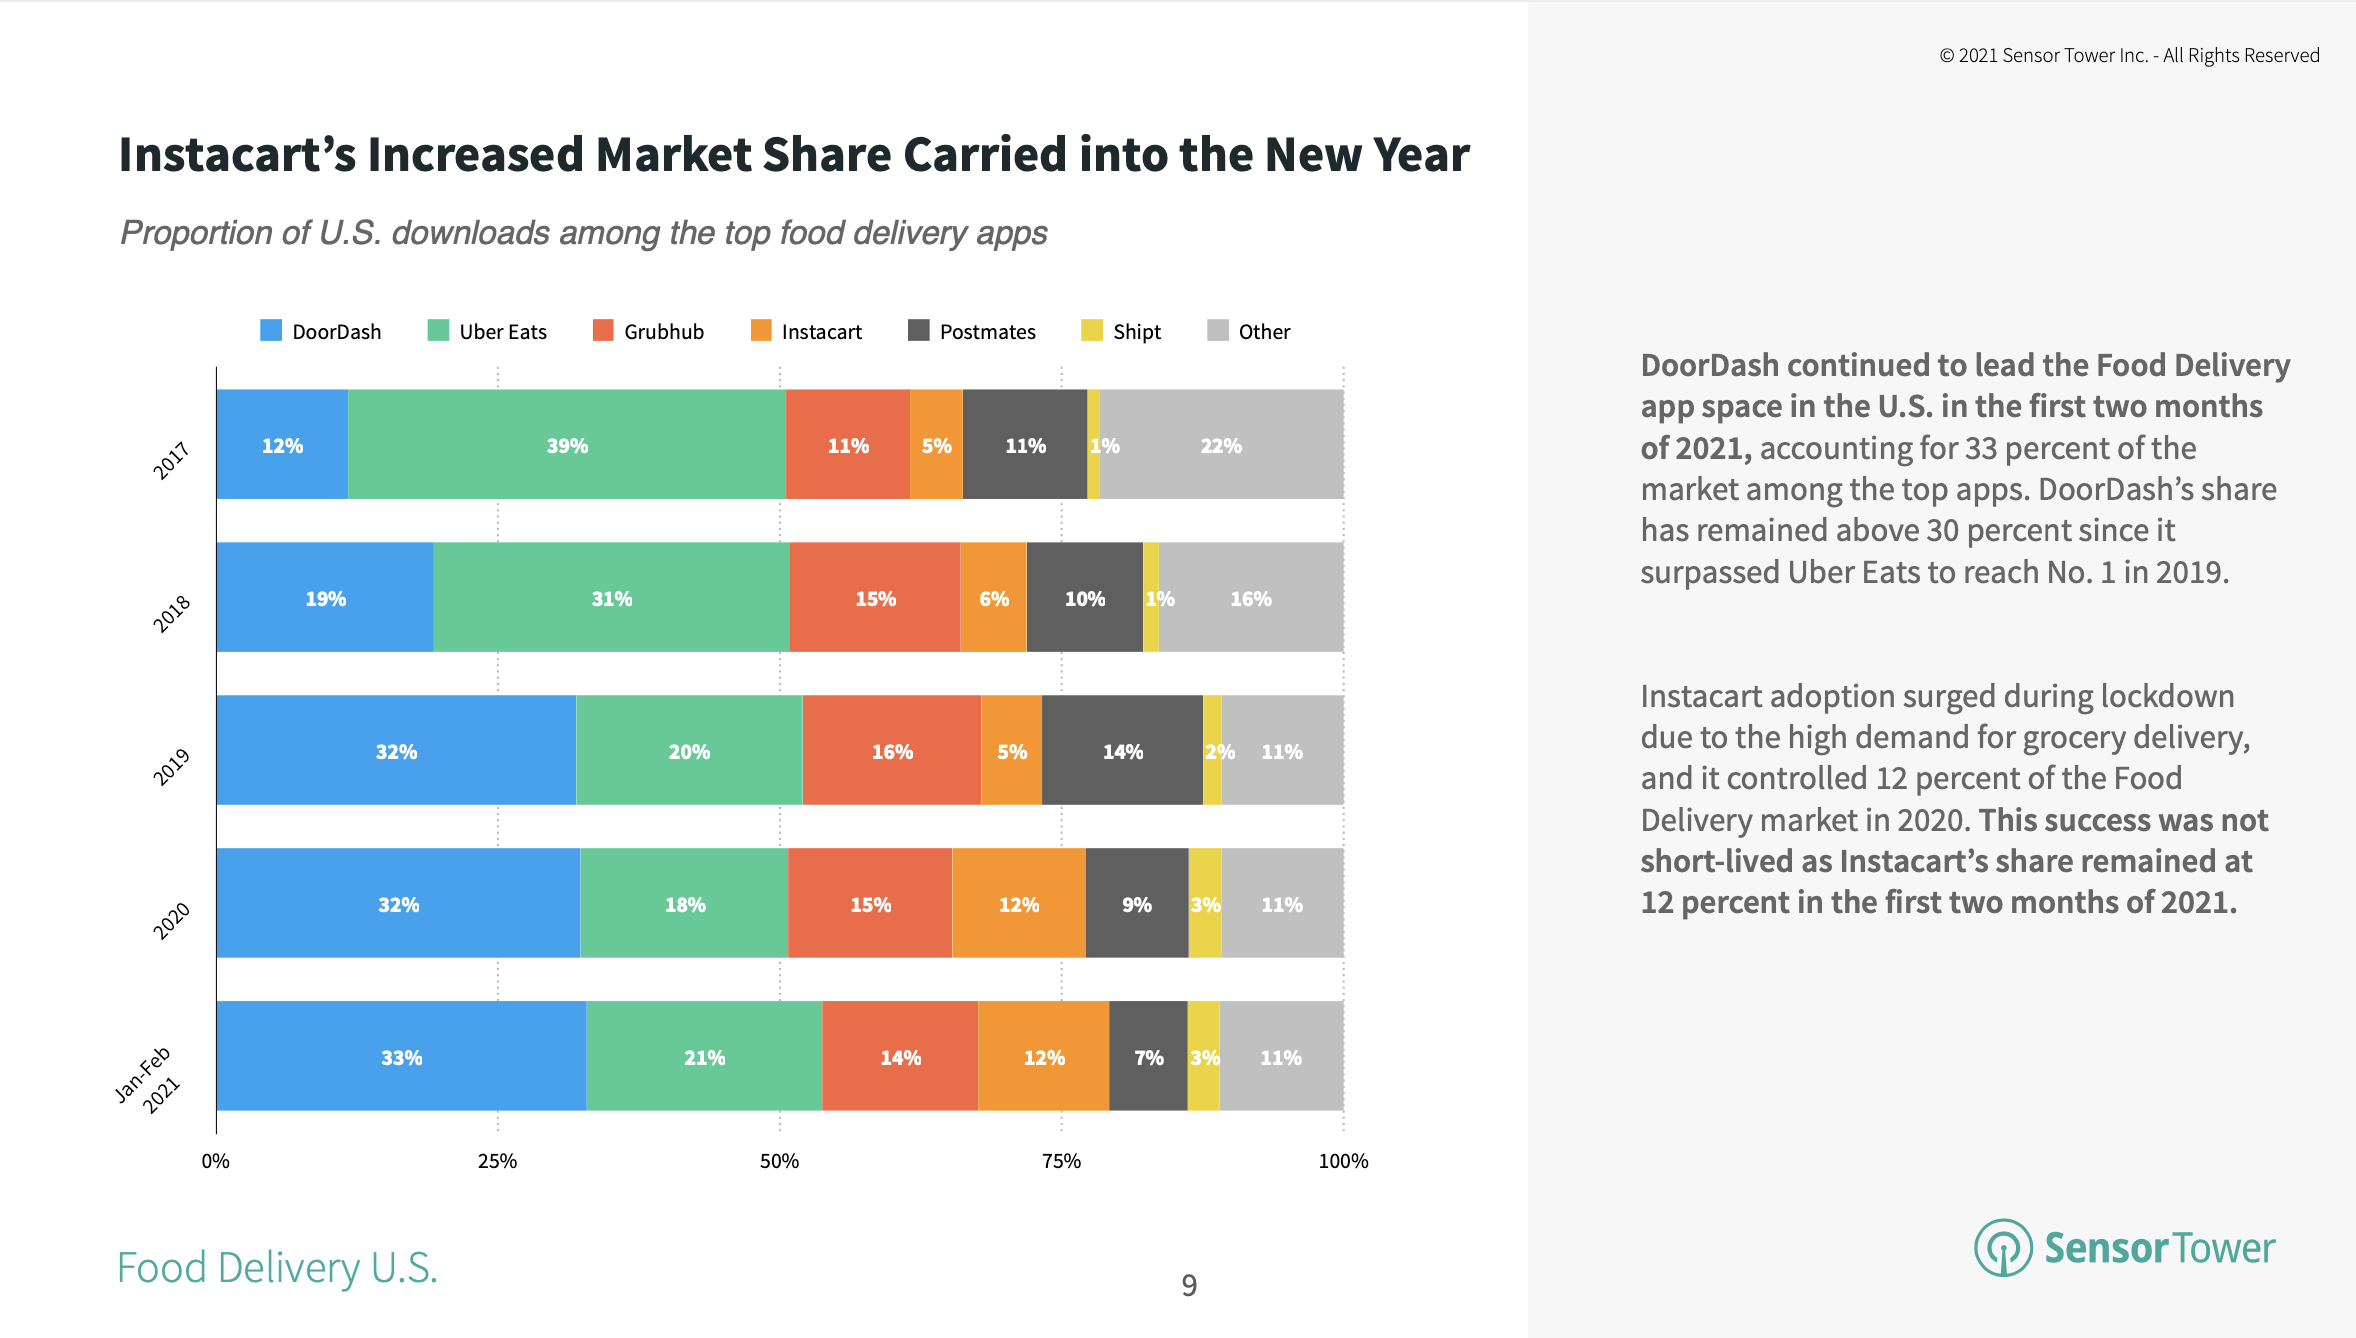 Instacart's 12 percent market share among top food delivery apps continues into 2021.